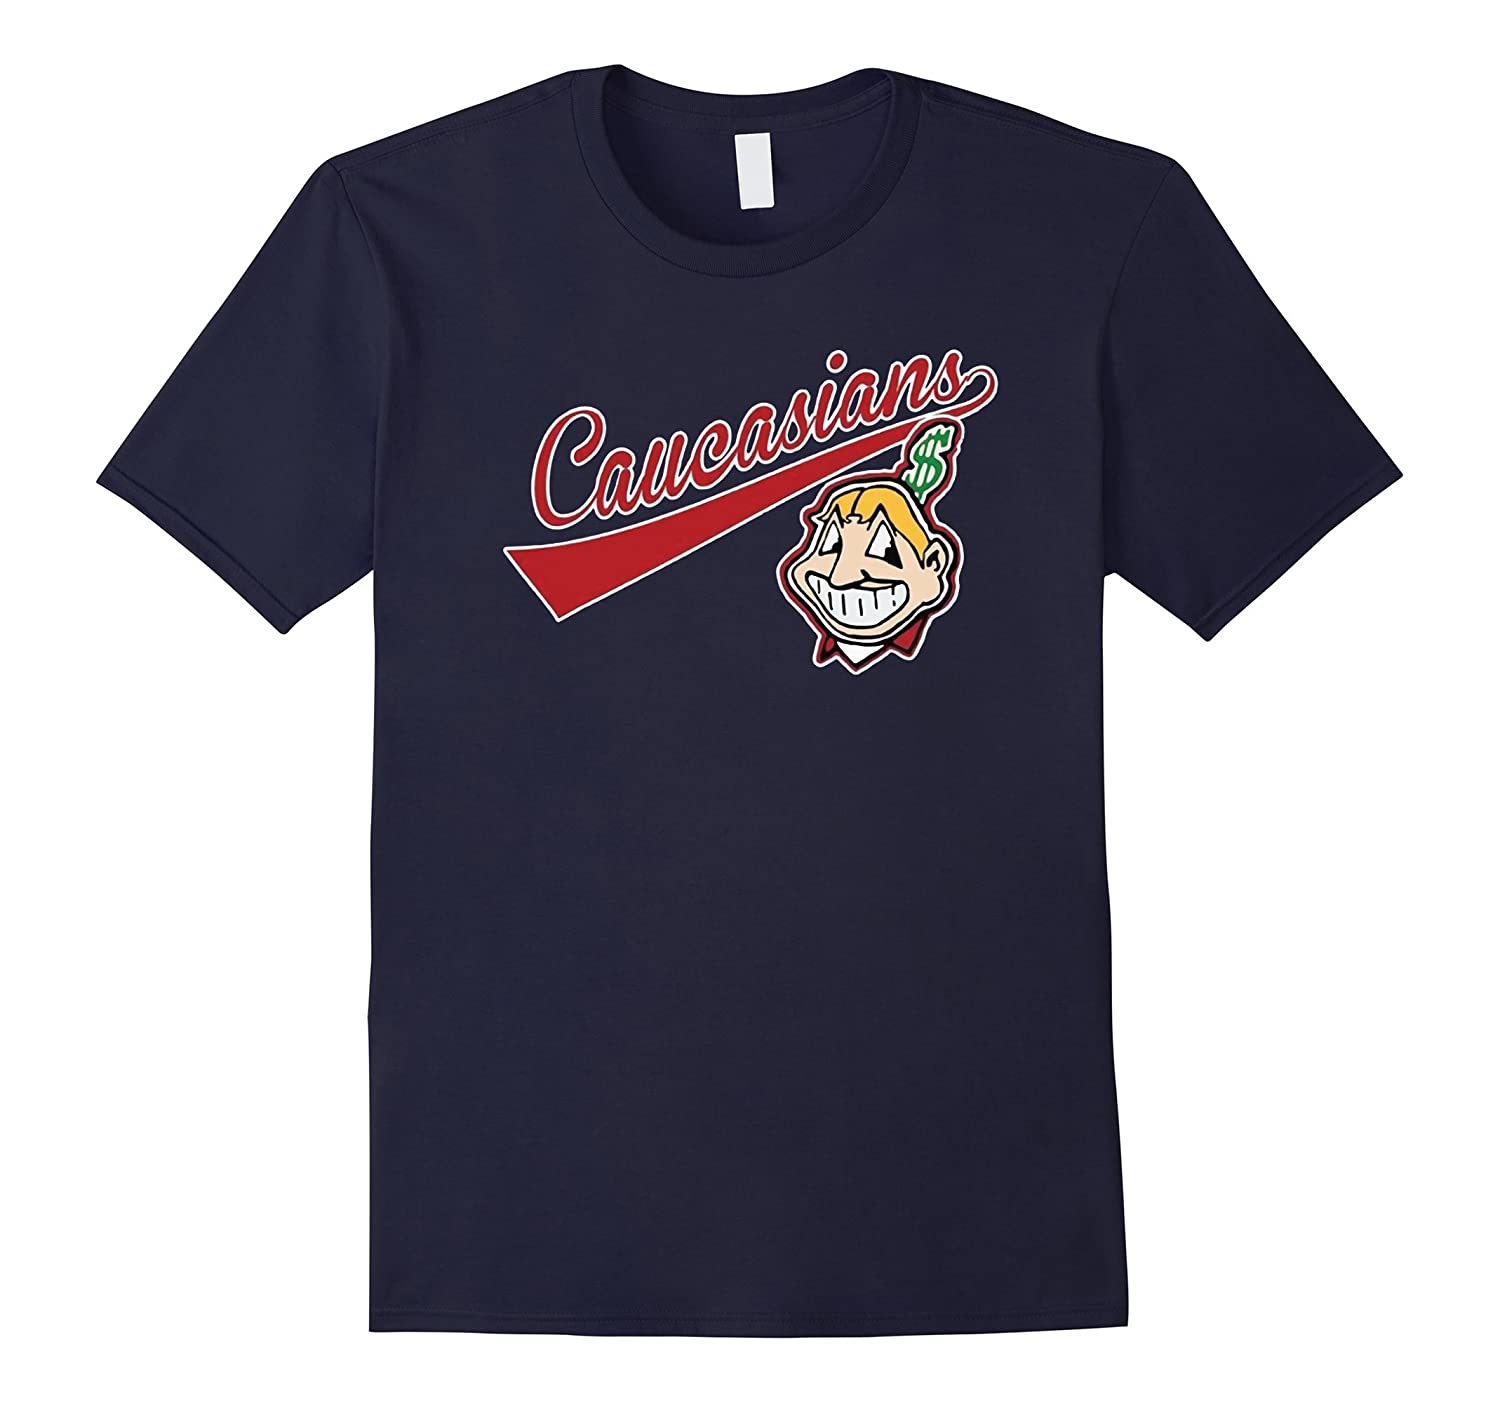 ON SALE  Cleveland Caucasians T-Shirt - Funny Parody Tee-RT